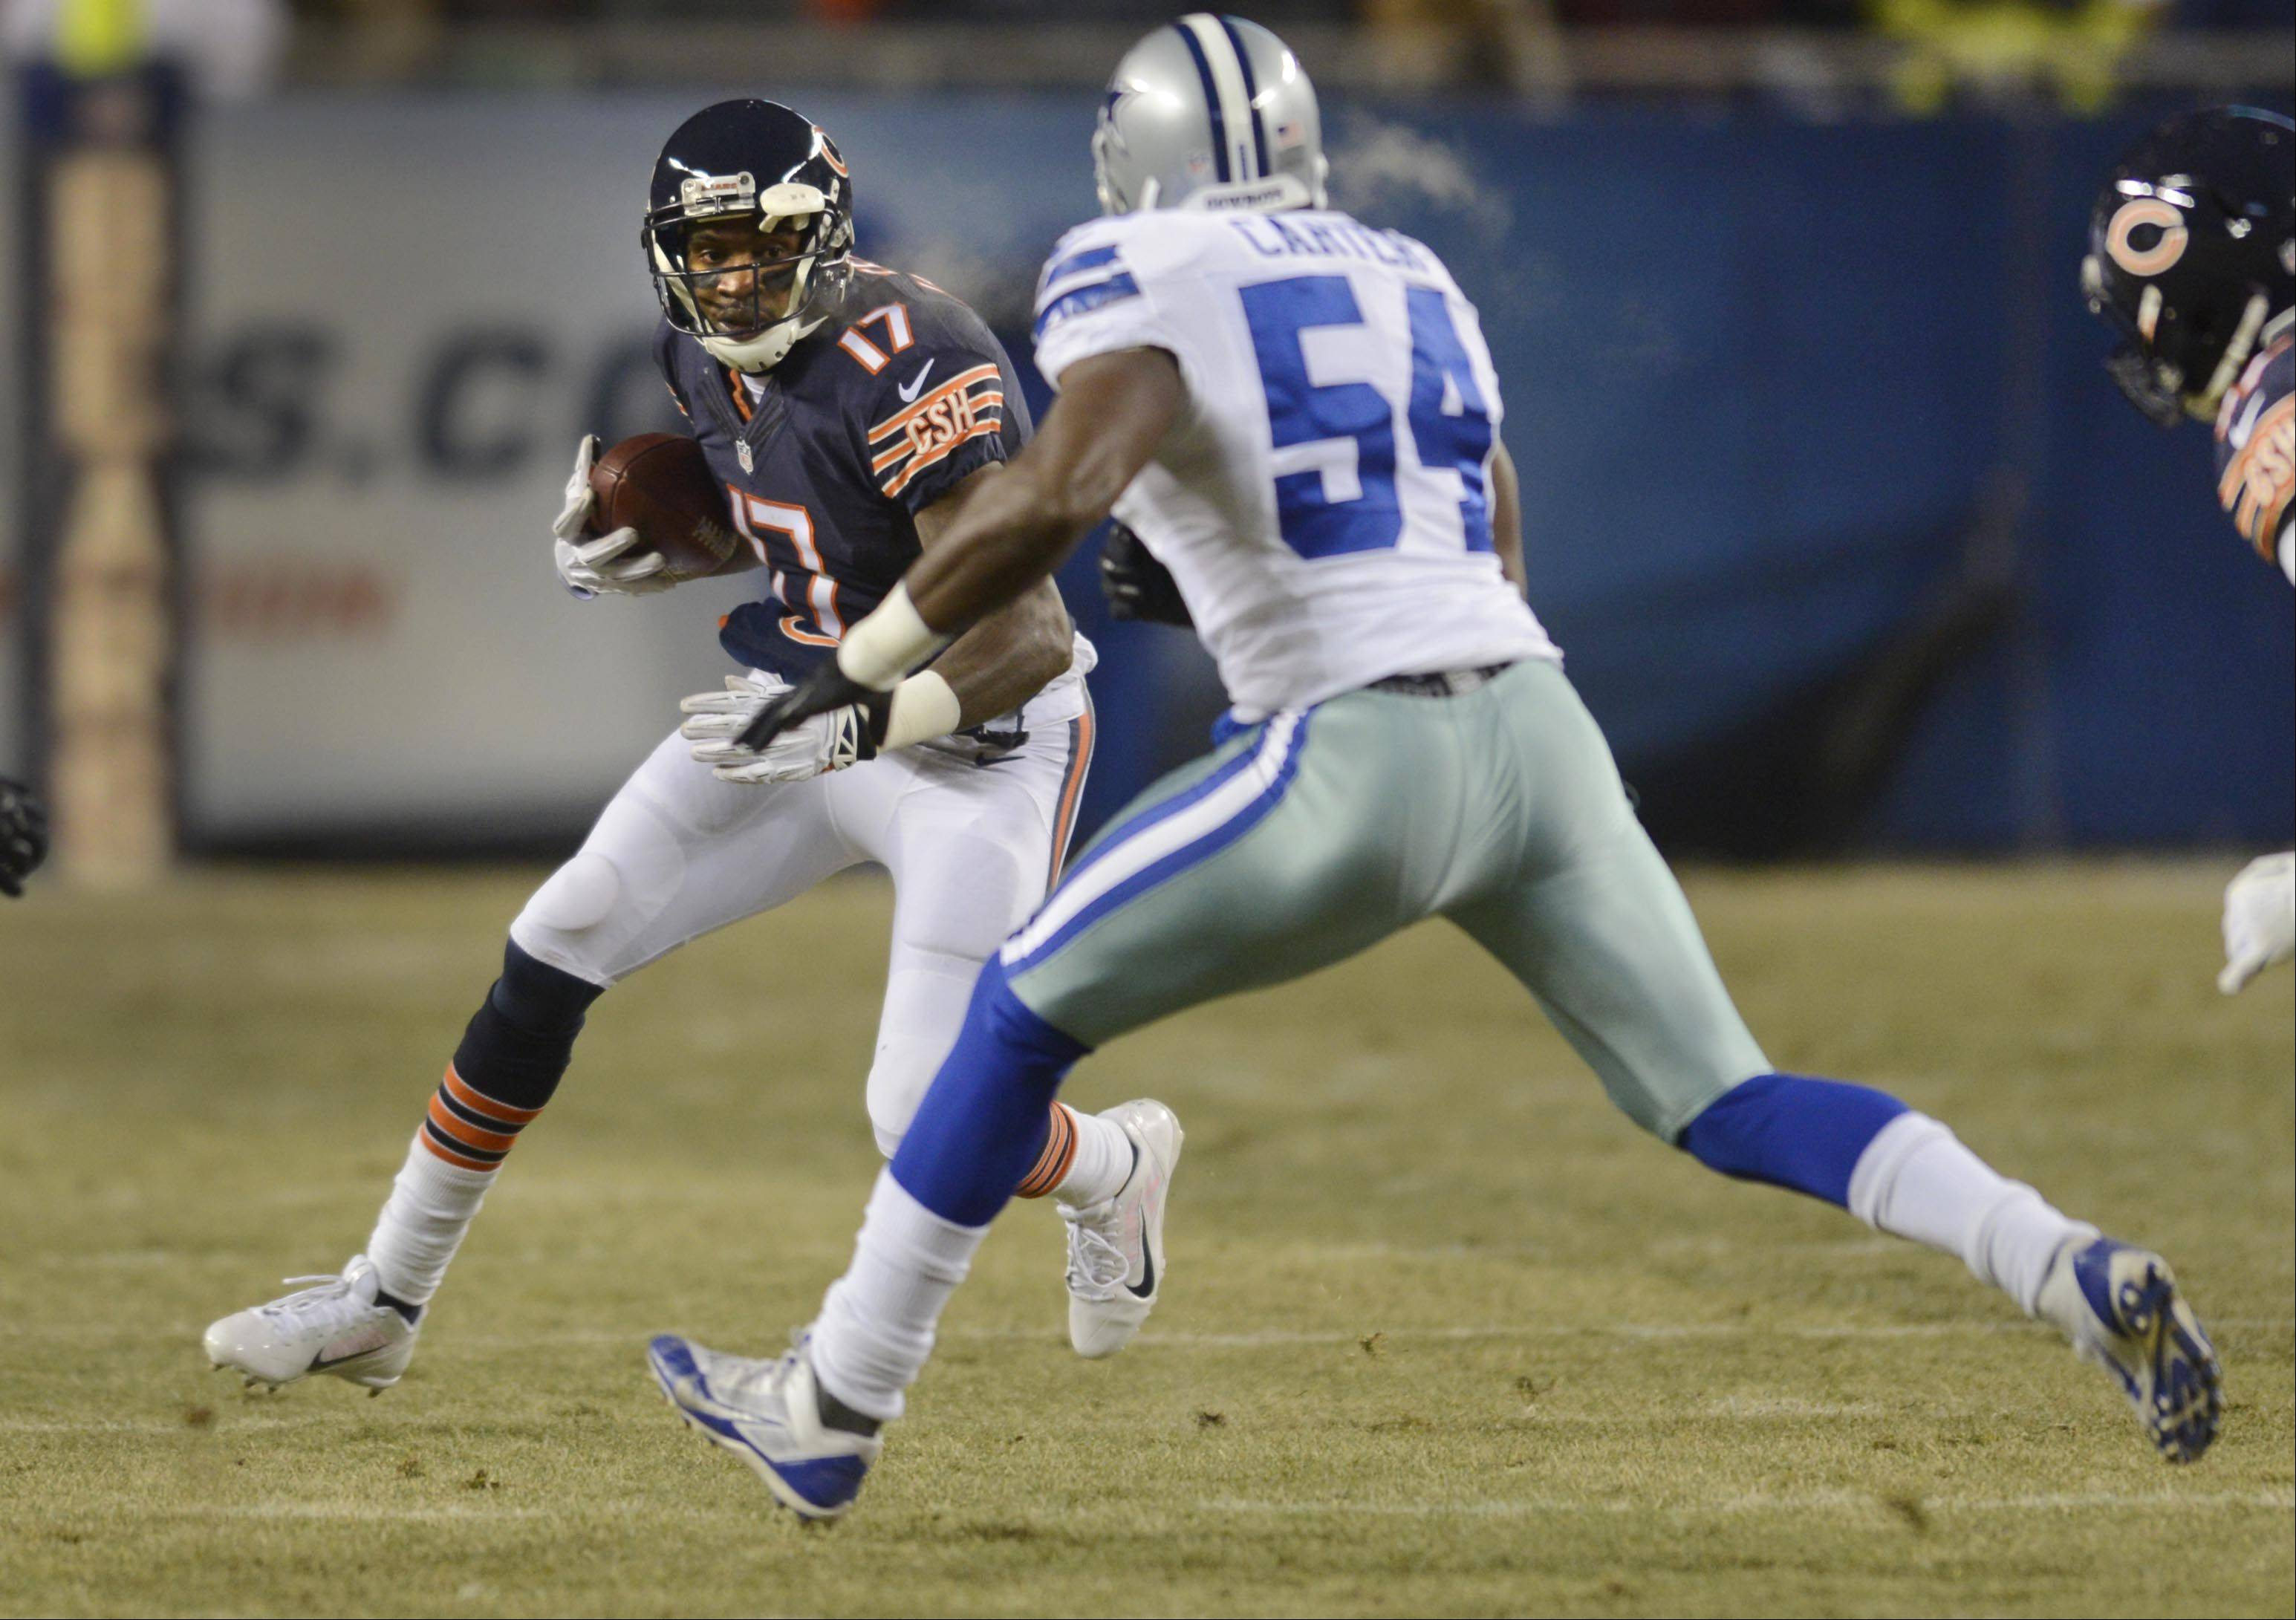 Chicago Bears wide receiver Alshon Jeffery runs after a catch against Dallas Cowboys outside linebacker Bruce Carter.